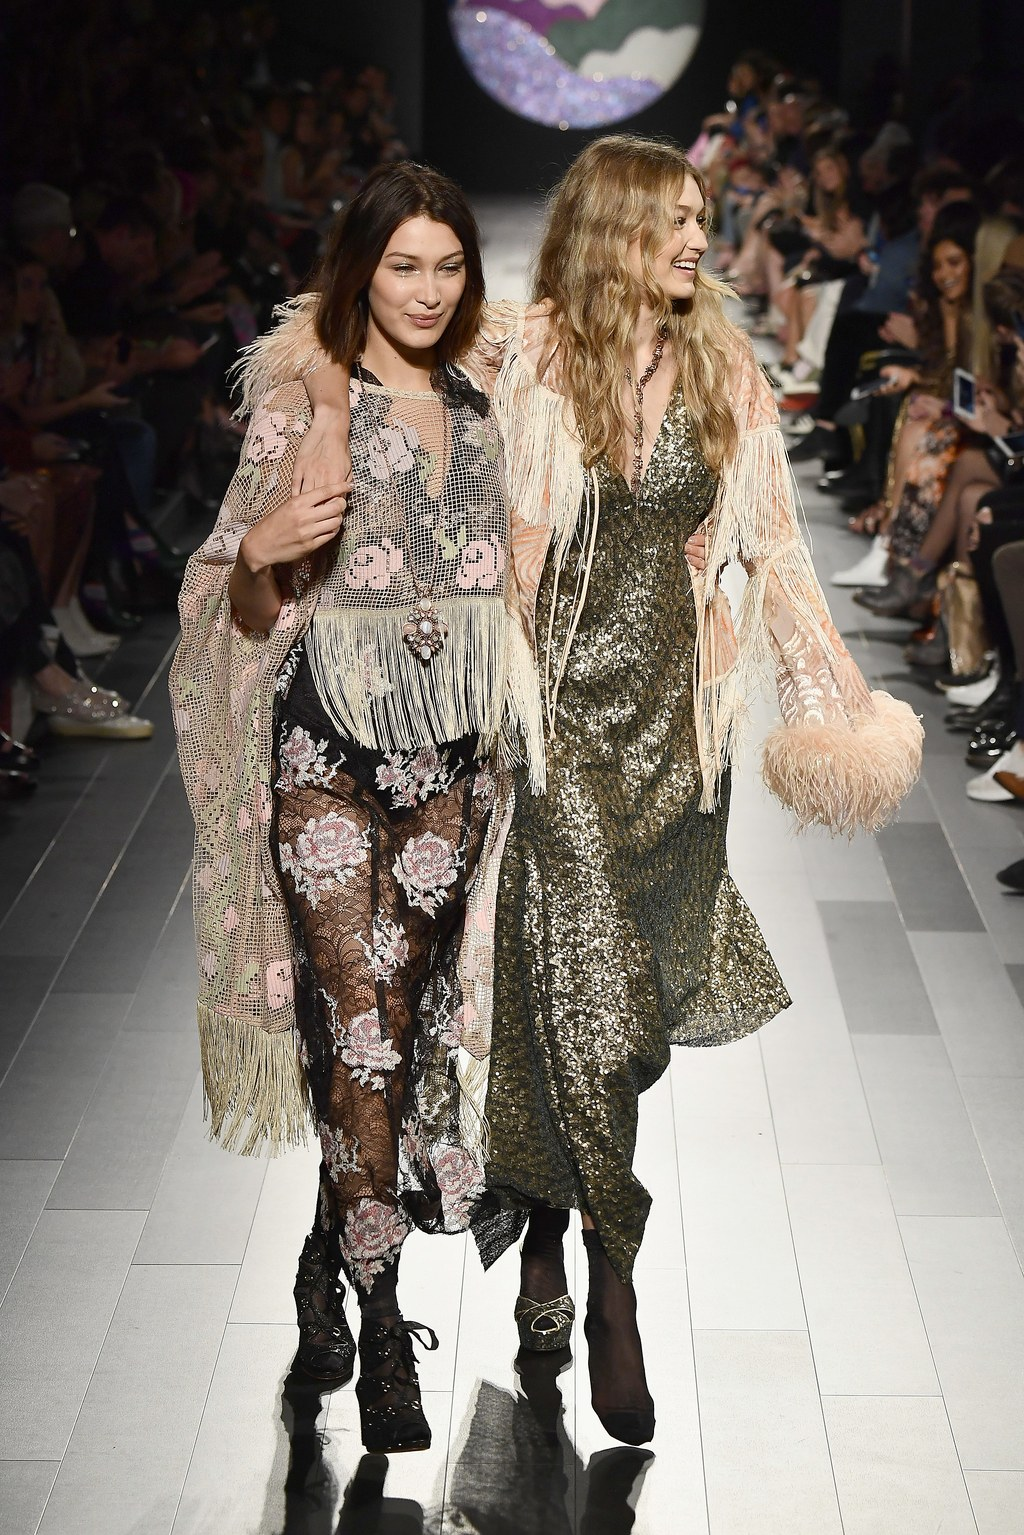 2. NYC Fashion Week Duo - Watching a sister (literally, a sister!) help another sister out,when she's experiencing a wardrobe malfunction, is something we can't get enough of! That's a true Haute Shot Cool Girl moment!